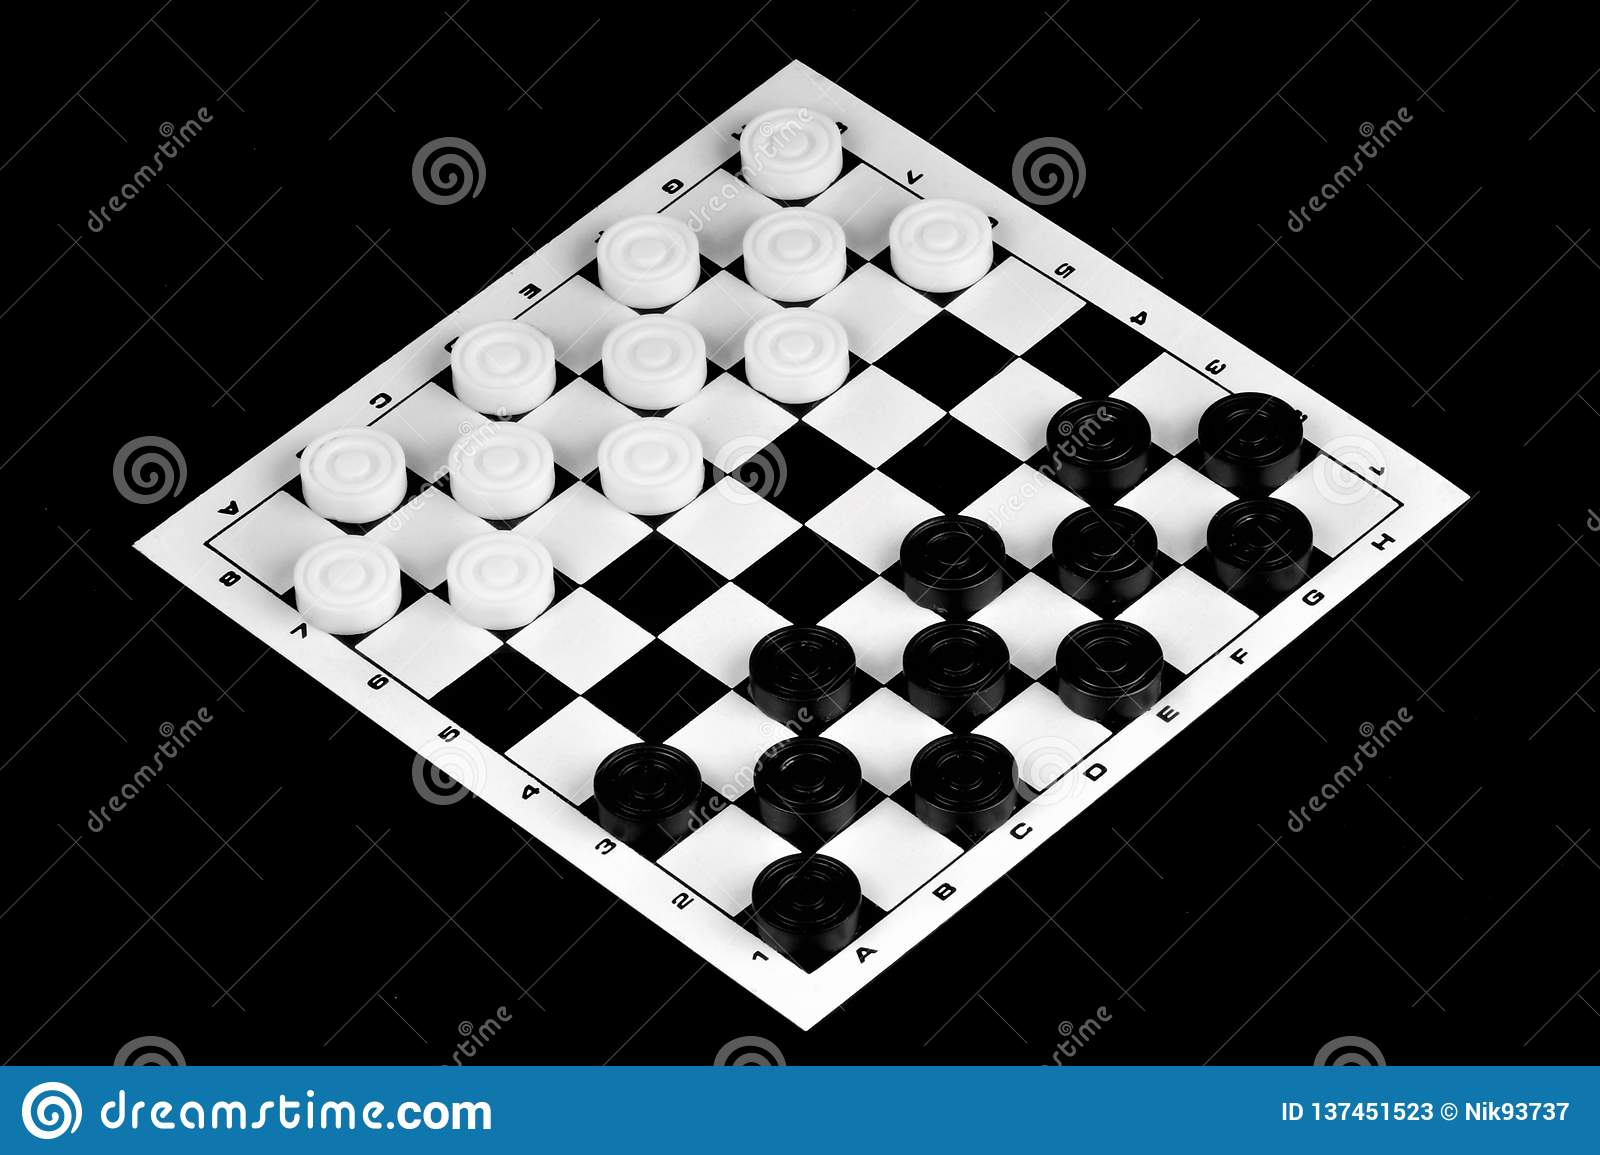 Checkers is a popular ancient Board logic antagonistic game with special black and white pieces, on a cell Board for two